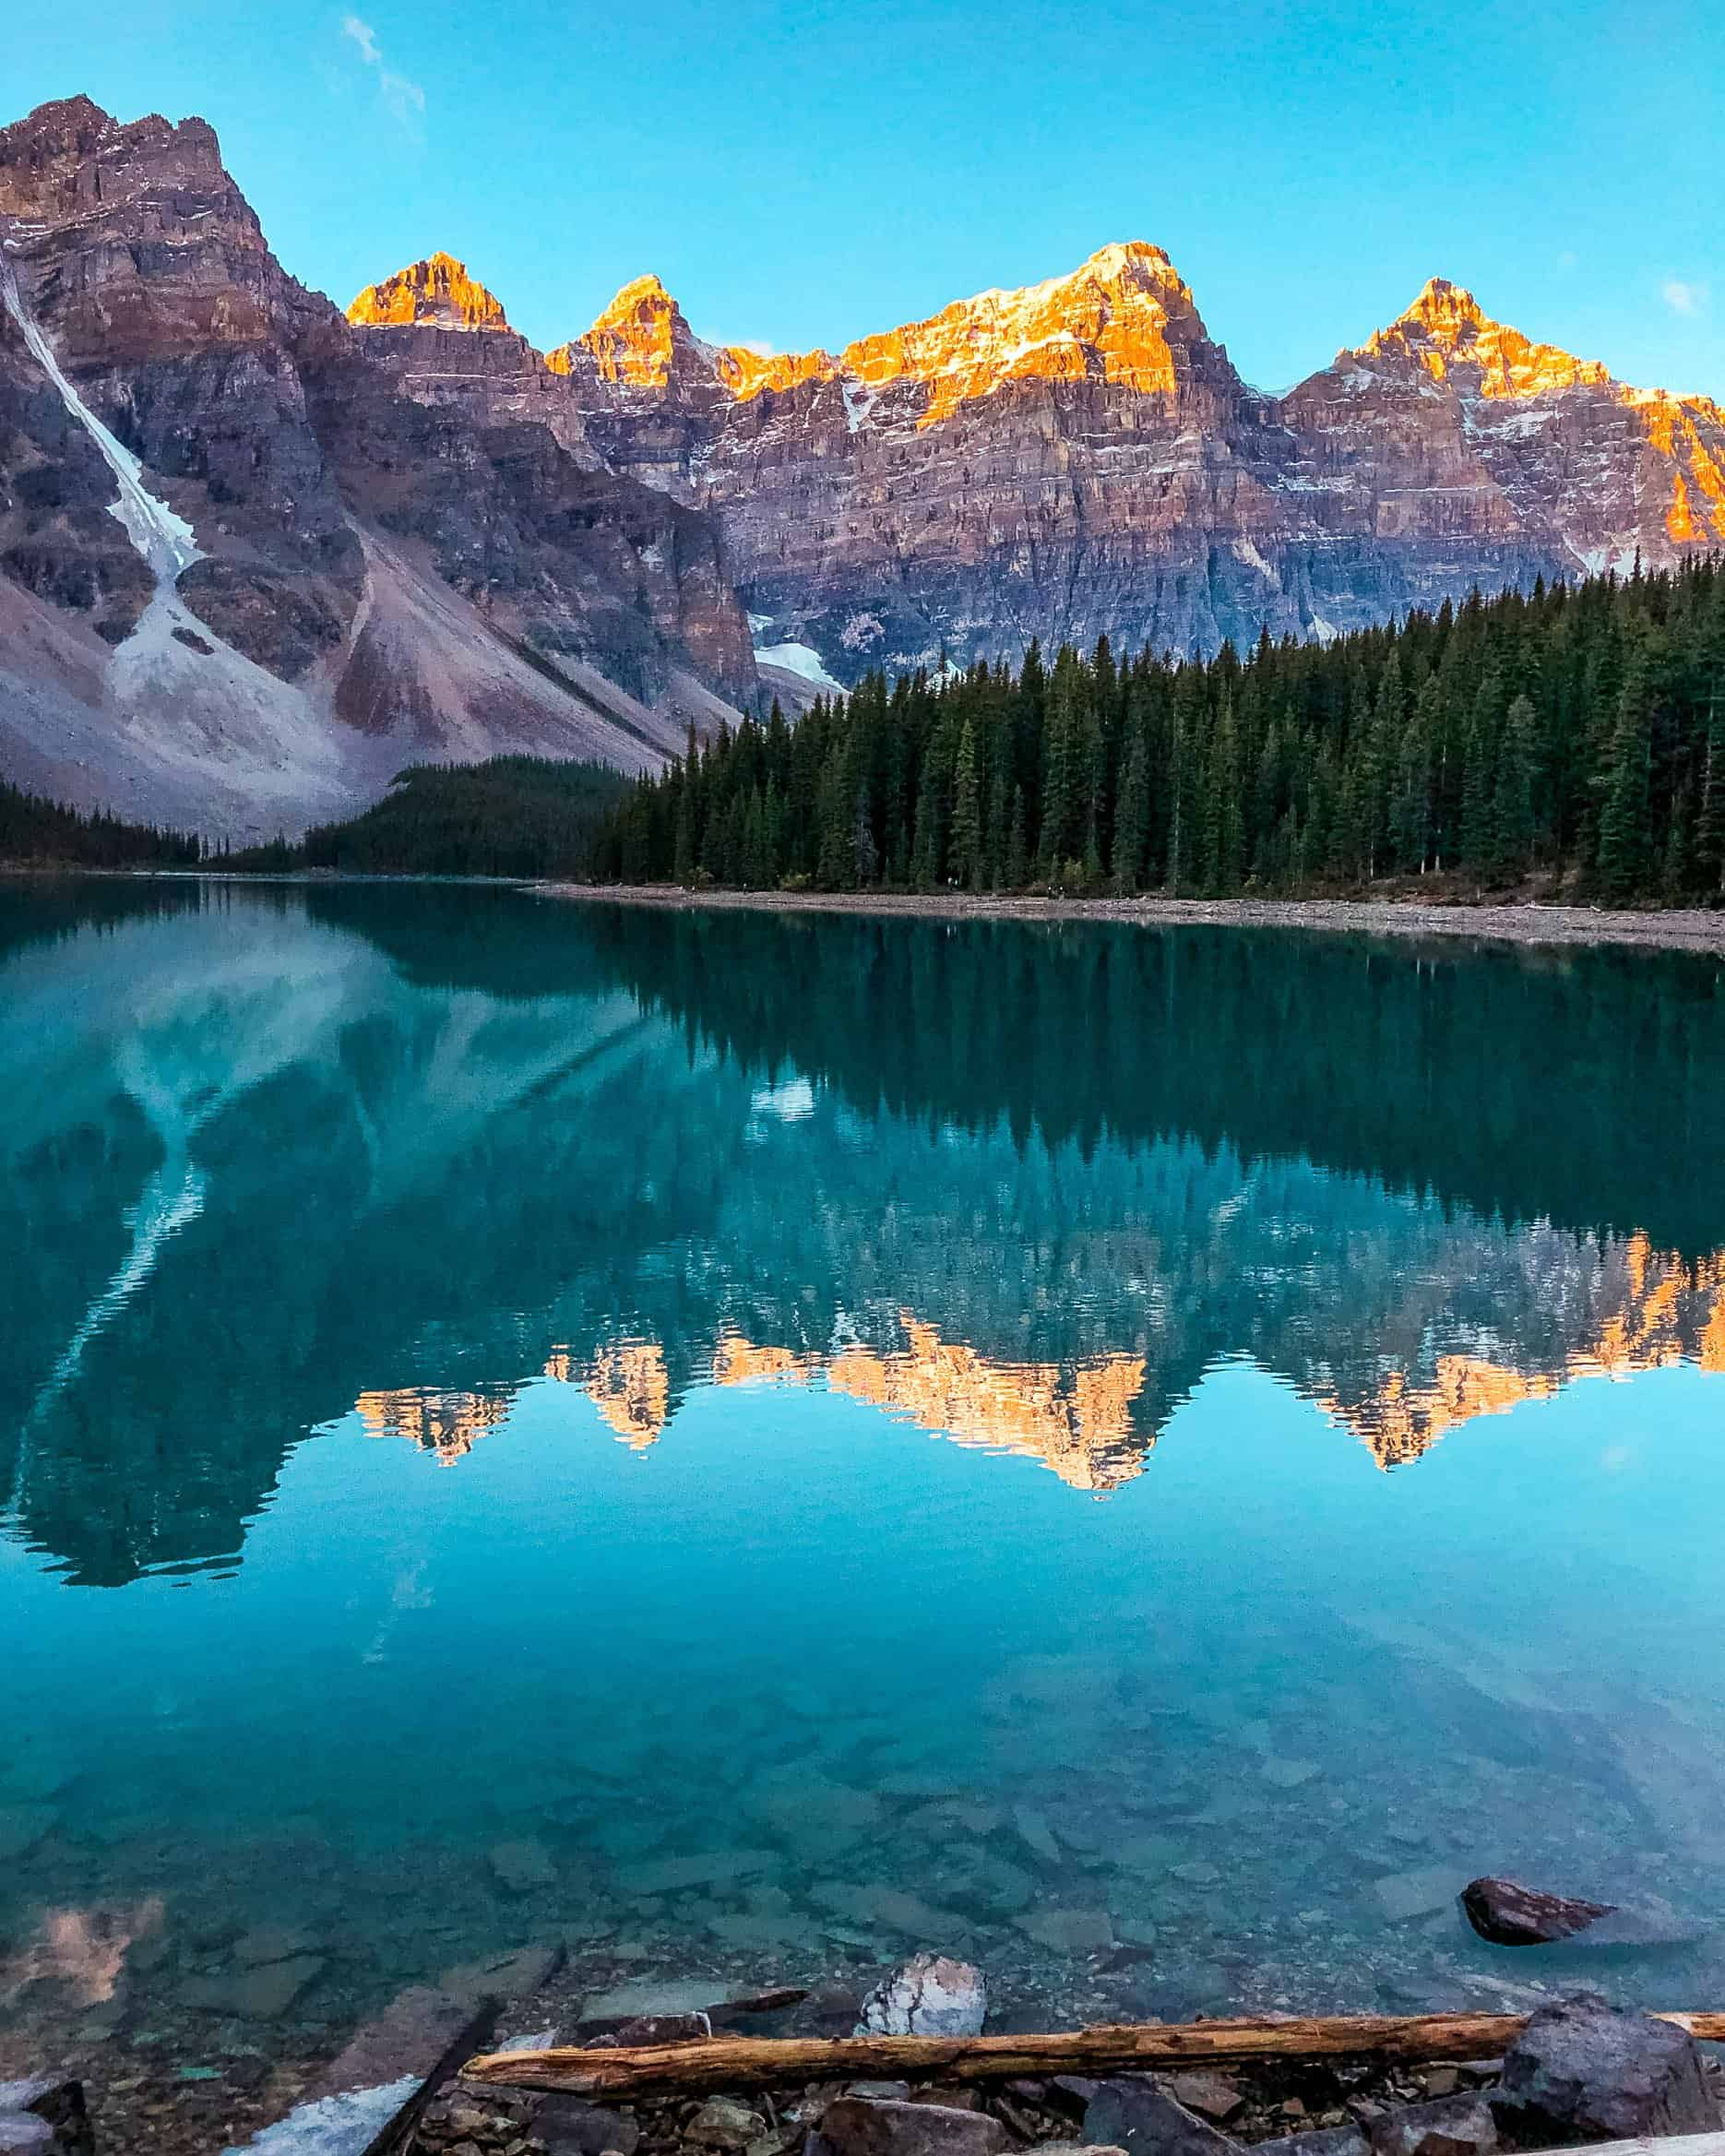 Orange Mountain Peaks at Sunrise at Moraine Lake in Fall